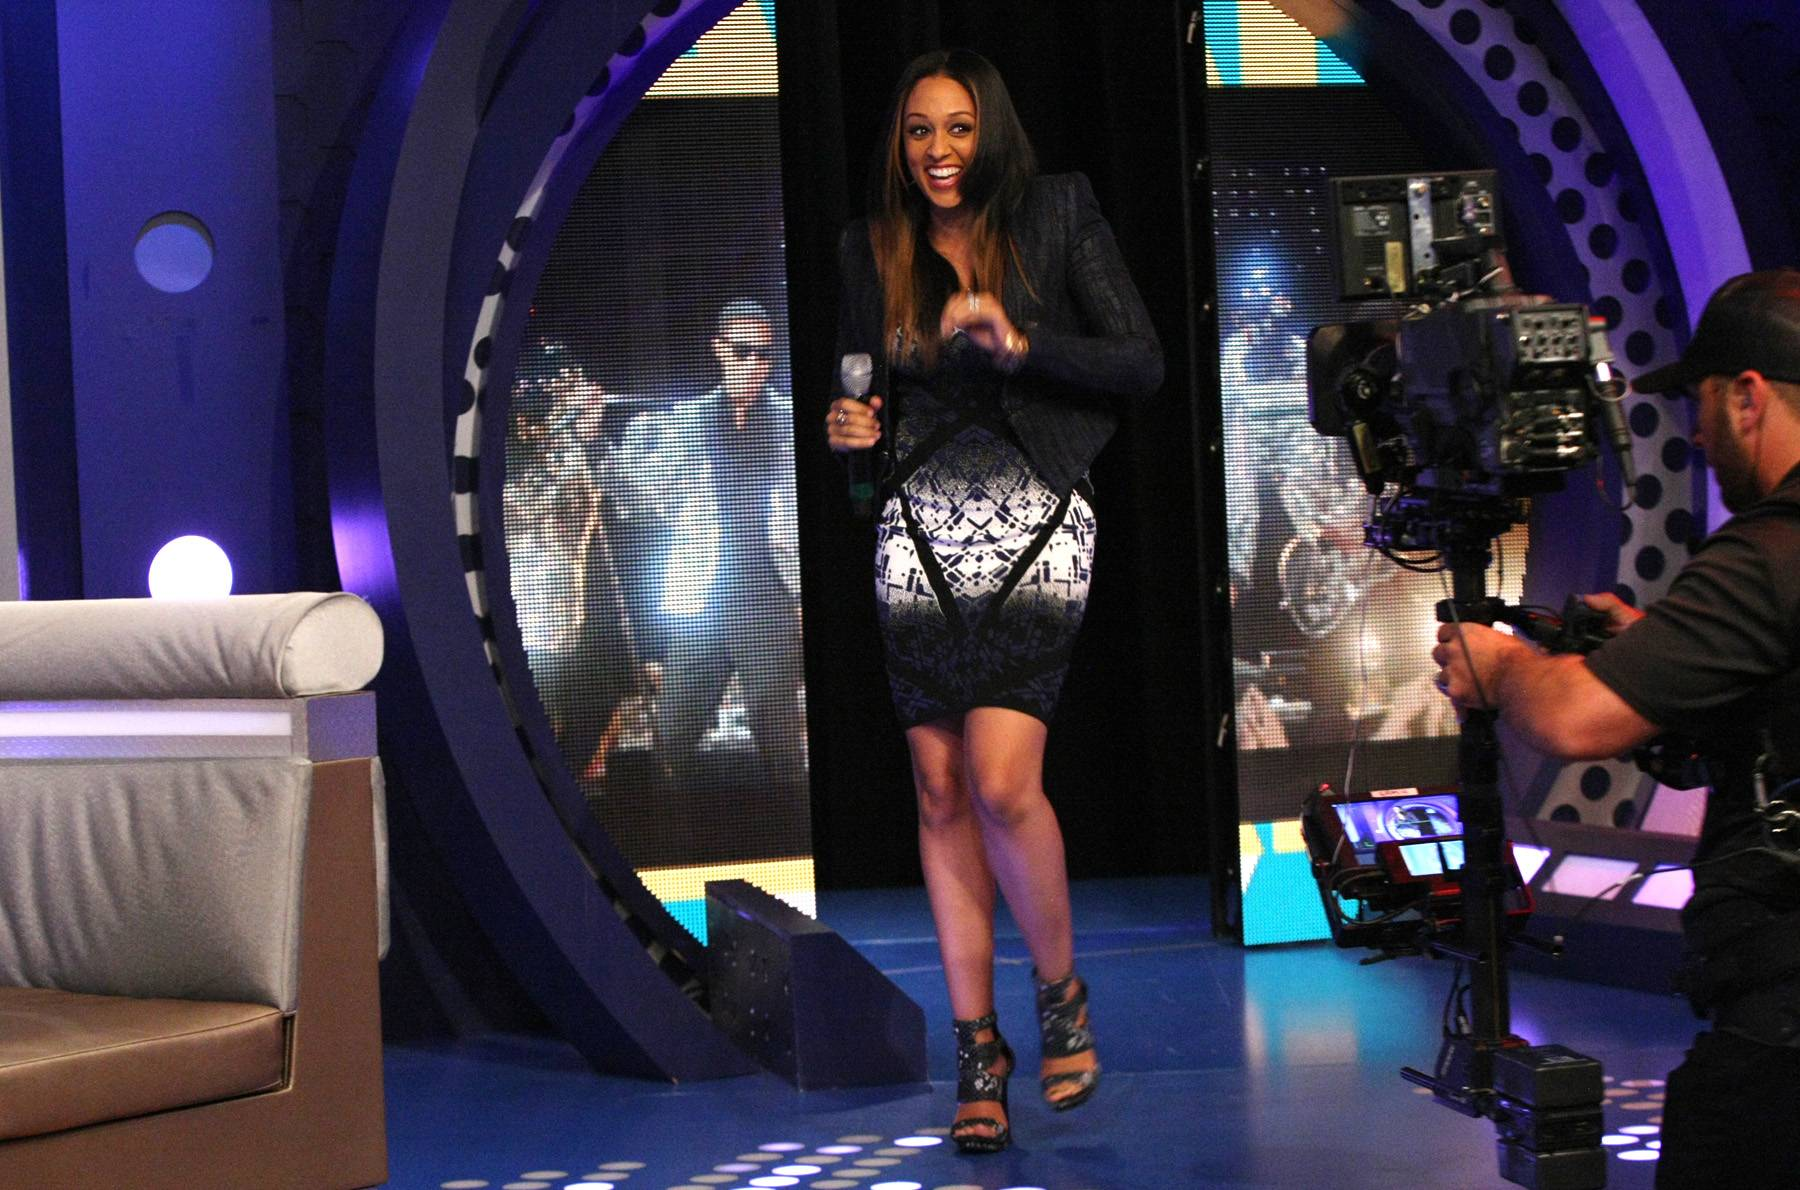 It's Me - Actress Tia Mowry-Hardrict feels the energy once she hits the livest stage.(Photo: Bennett Raglin/BET/Getty Images for BET)